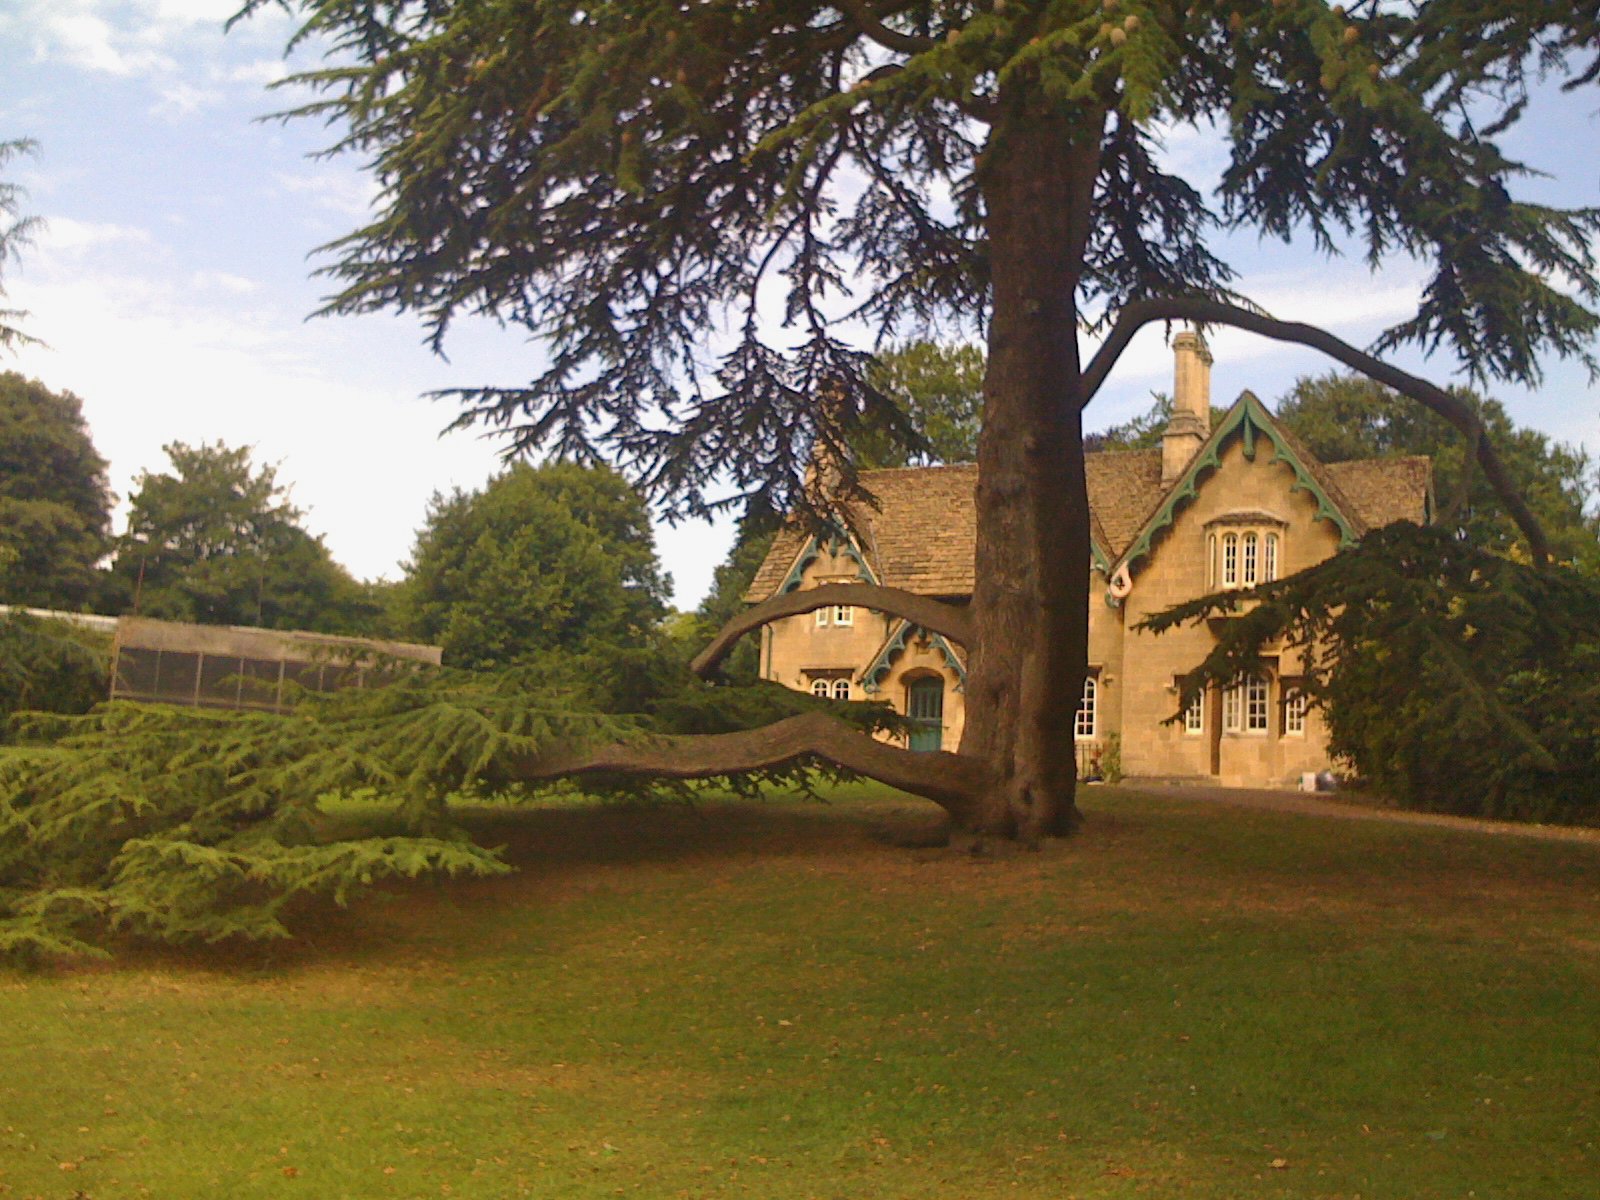 A fir type tree with a metre and a half diameter trunk featuring a large half metre diameter low growing branch extending several metres just a half metre from the ground, in the grounds of a century old, light stone, six bedroomed house with steep rooves edged with ornate green fascias